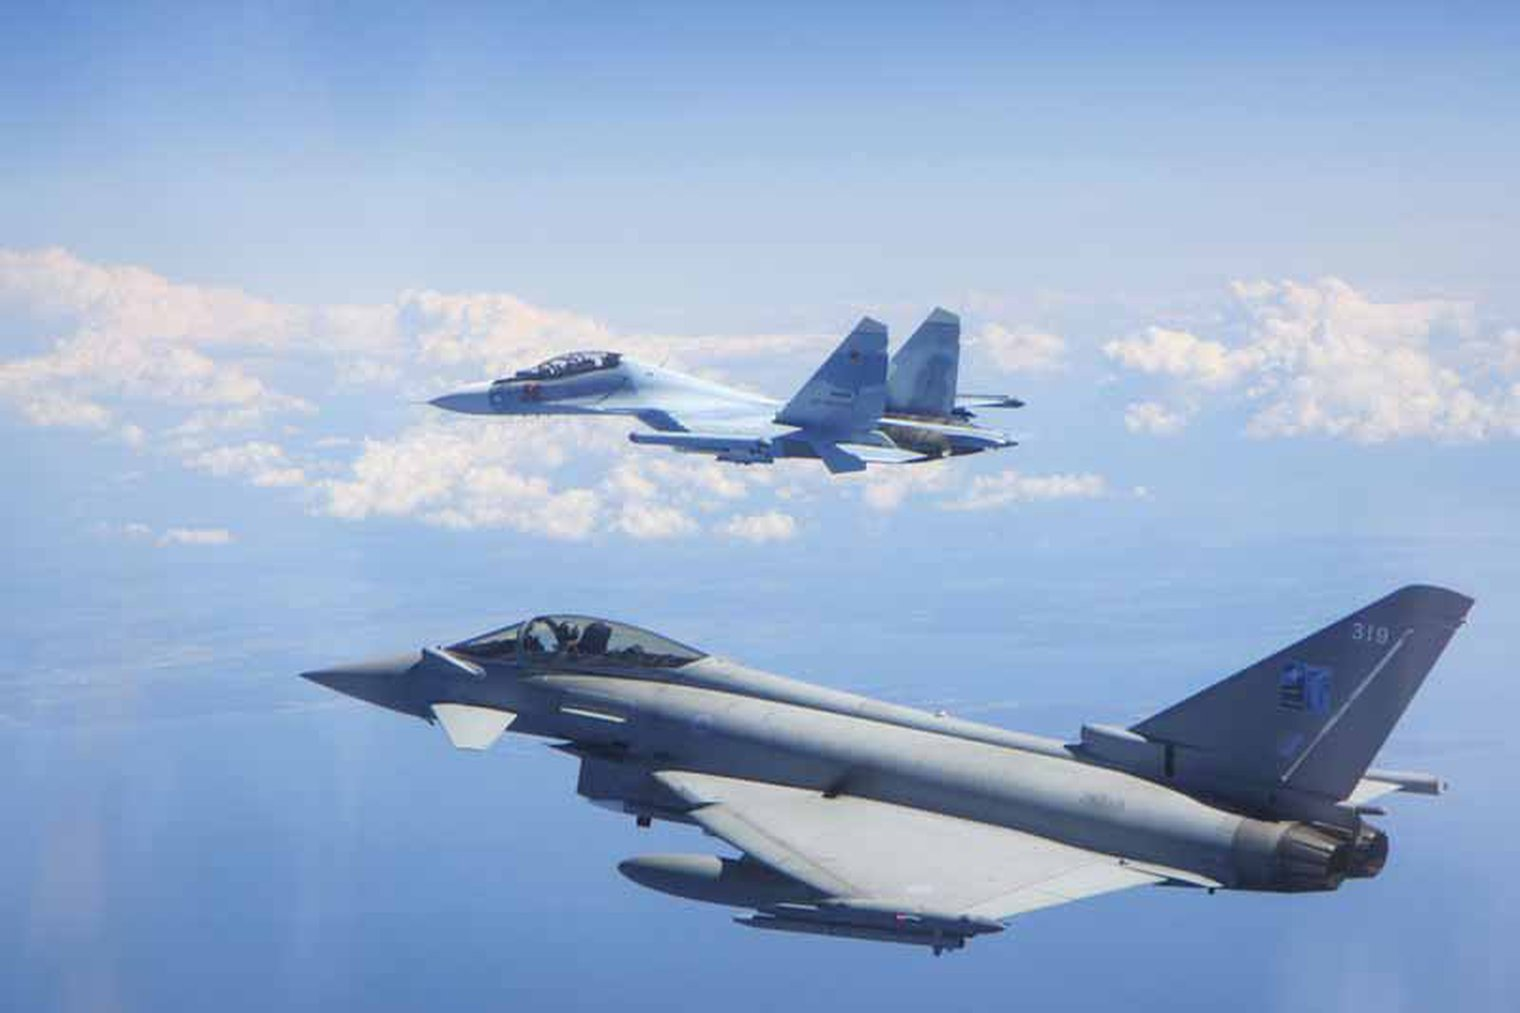 Rolls-Royce to suport UK Typhoon engines - MLF - Military Logistics